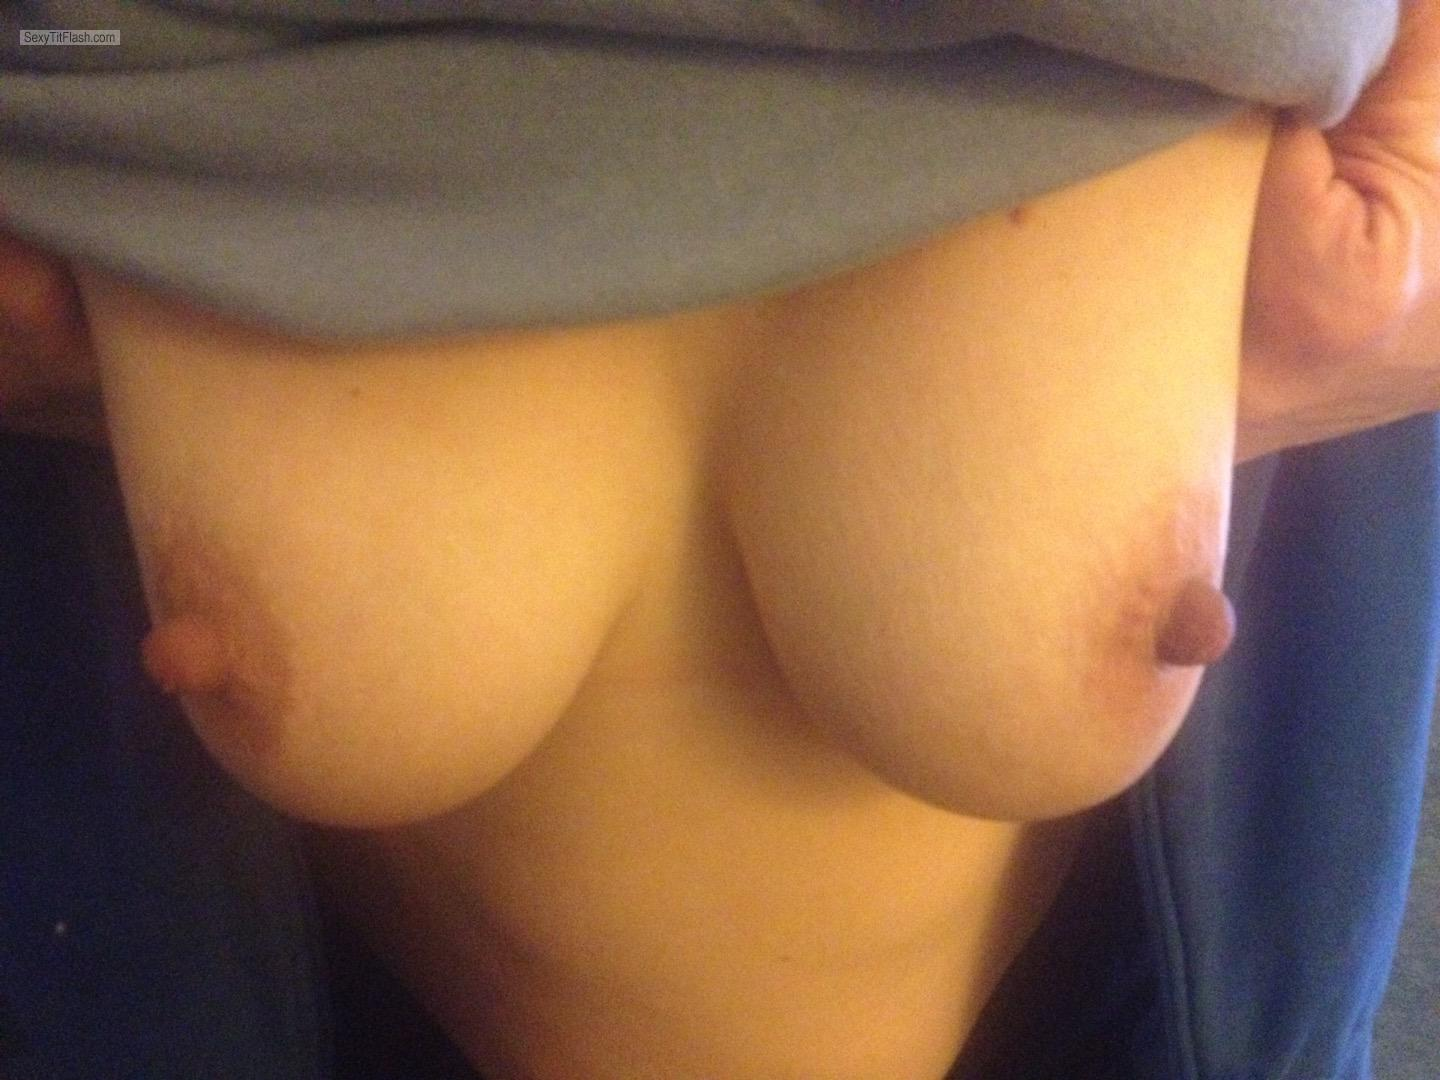 Medium Tits Of My Wife Reelnice